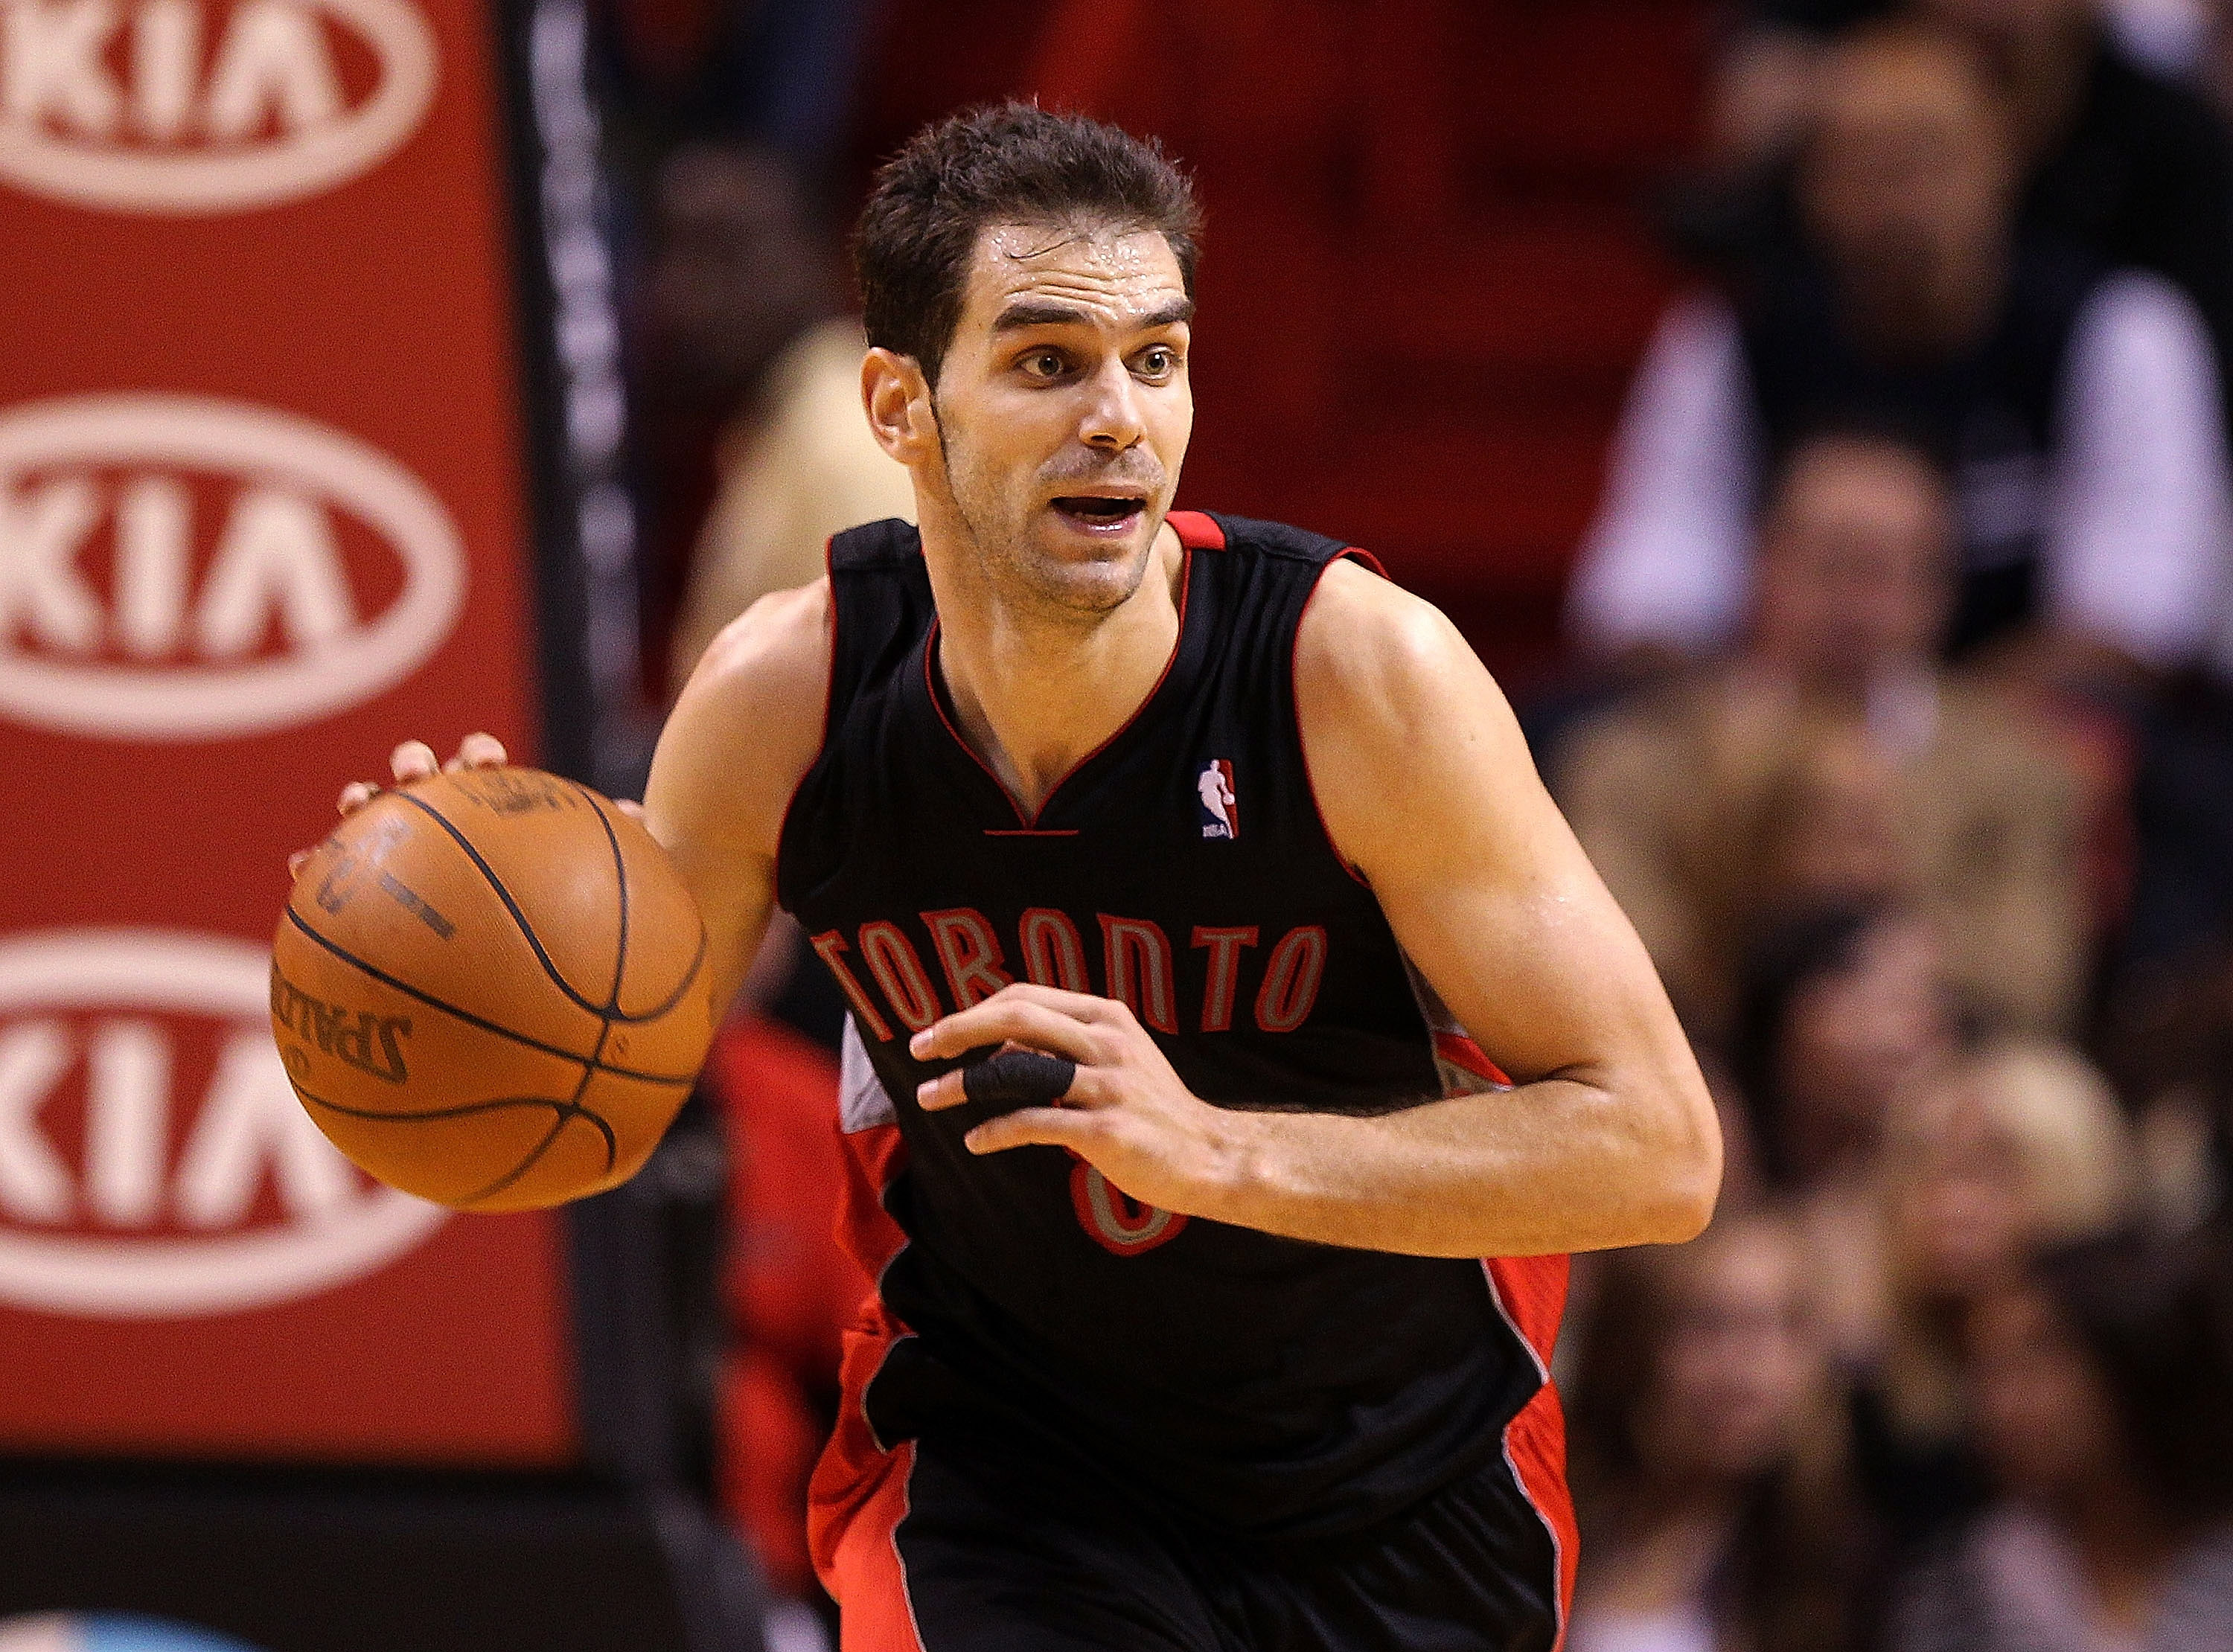 MIAMI, FL - JANUARY 22:  Jose Calderon #8 of the Toronto Raptors dribbles the ball during a game against the Miami Heat at American Airlines Arena on January 22, 2011 in Miami, Florida. NOTE TO USER: User expressly acknowledges and agrees that, by downloa